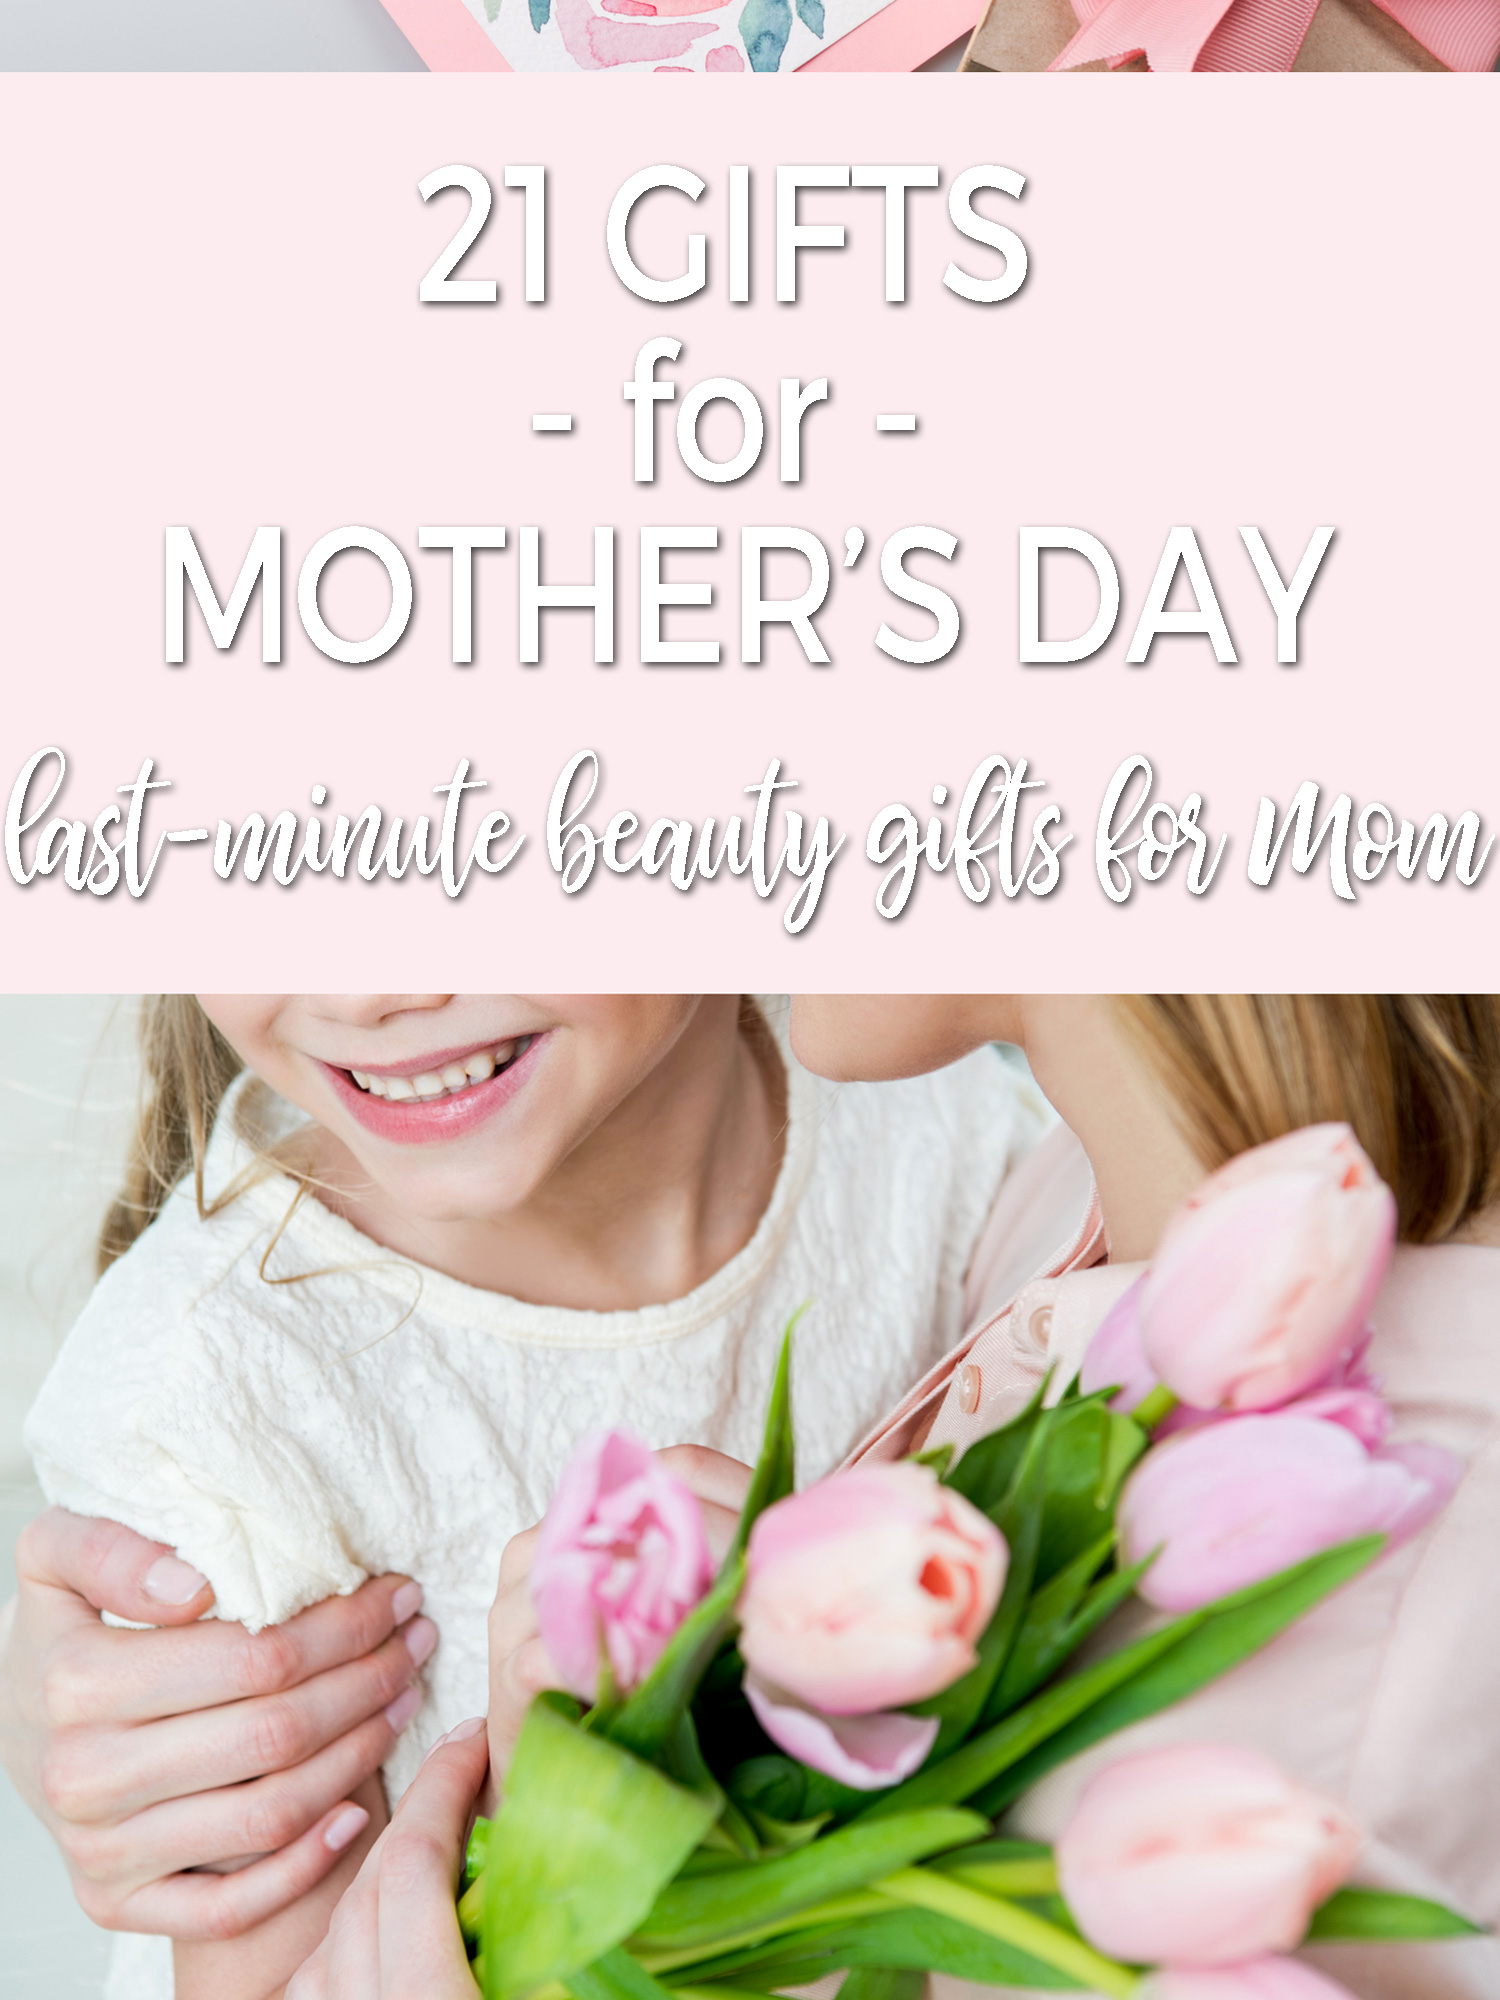 21 Gifts for Mother's Day